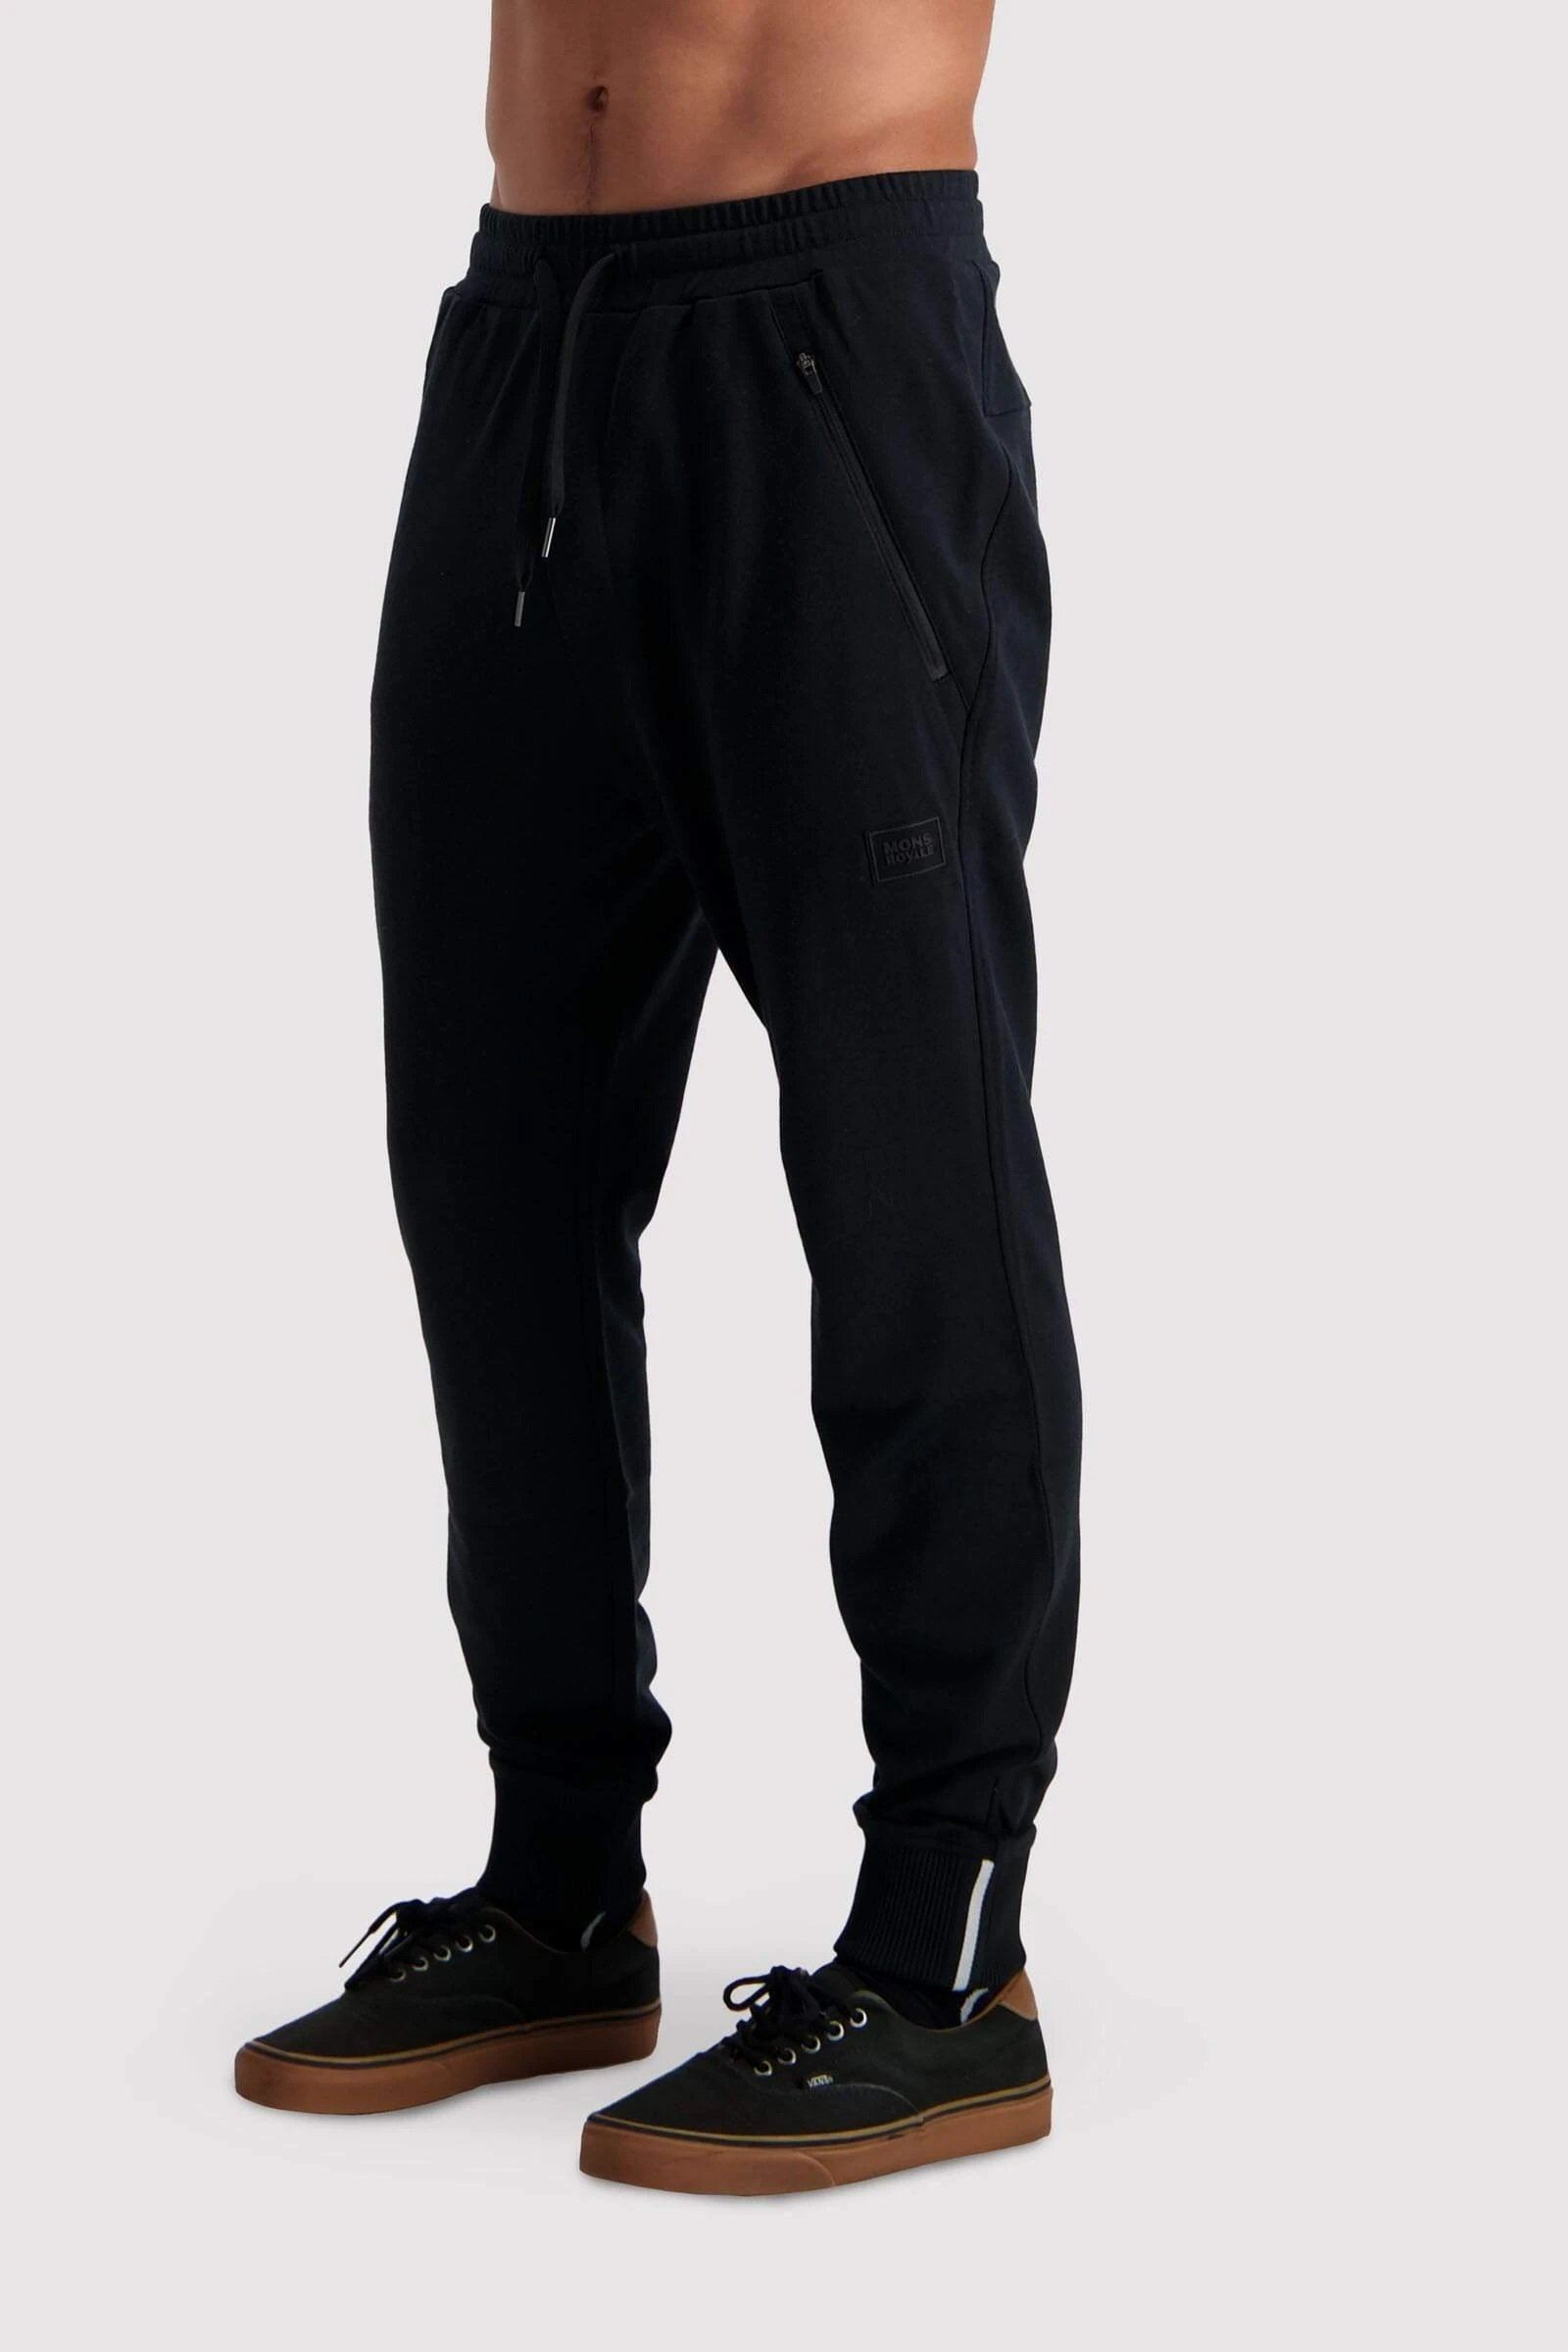 Mons Royale - M's Flight Pant - Weekendbee - sustainable sportswear